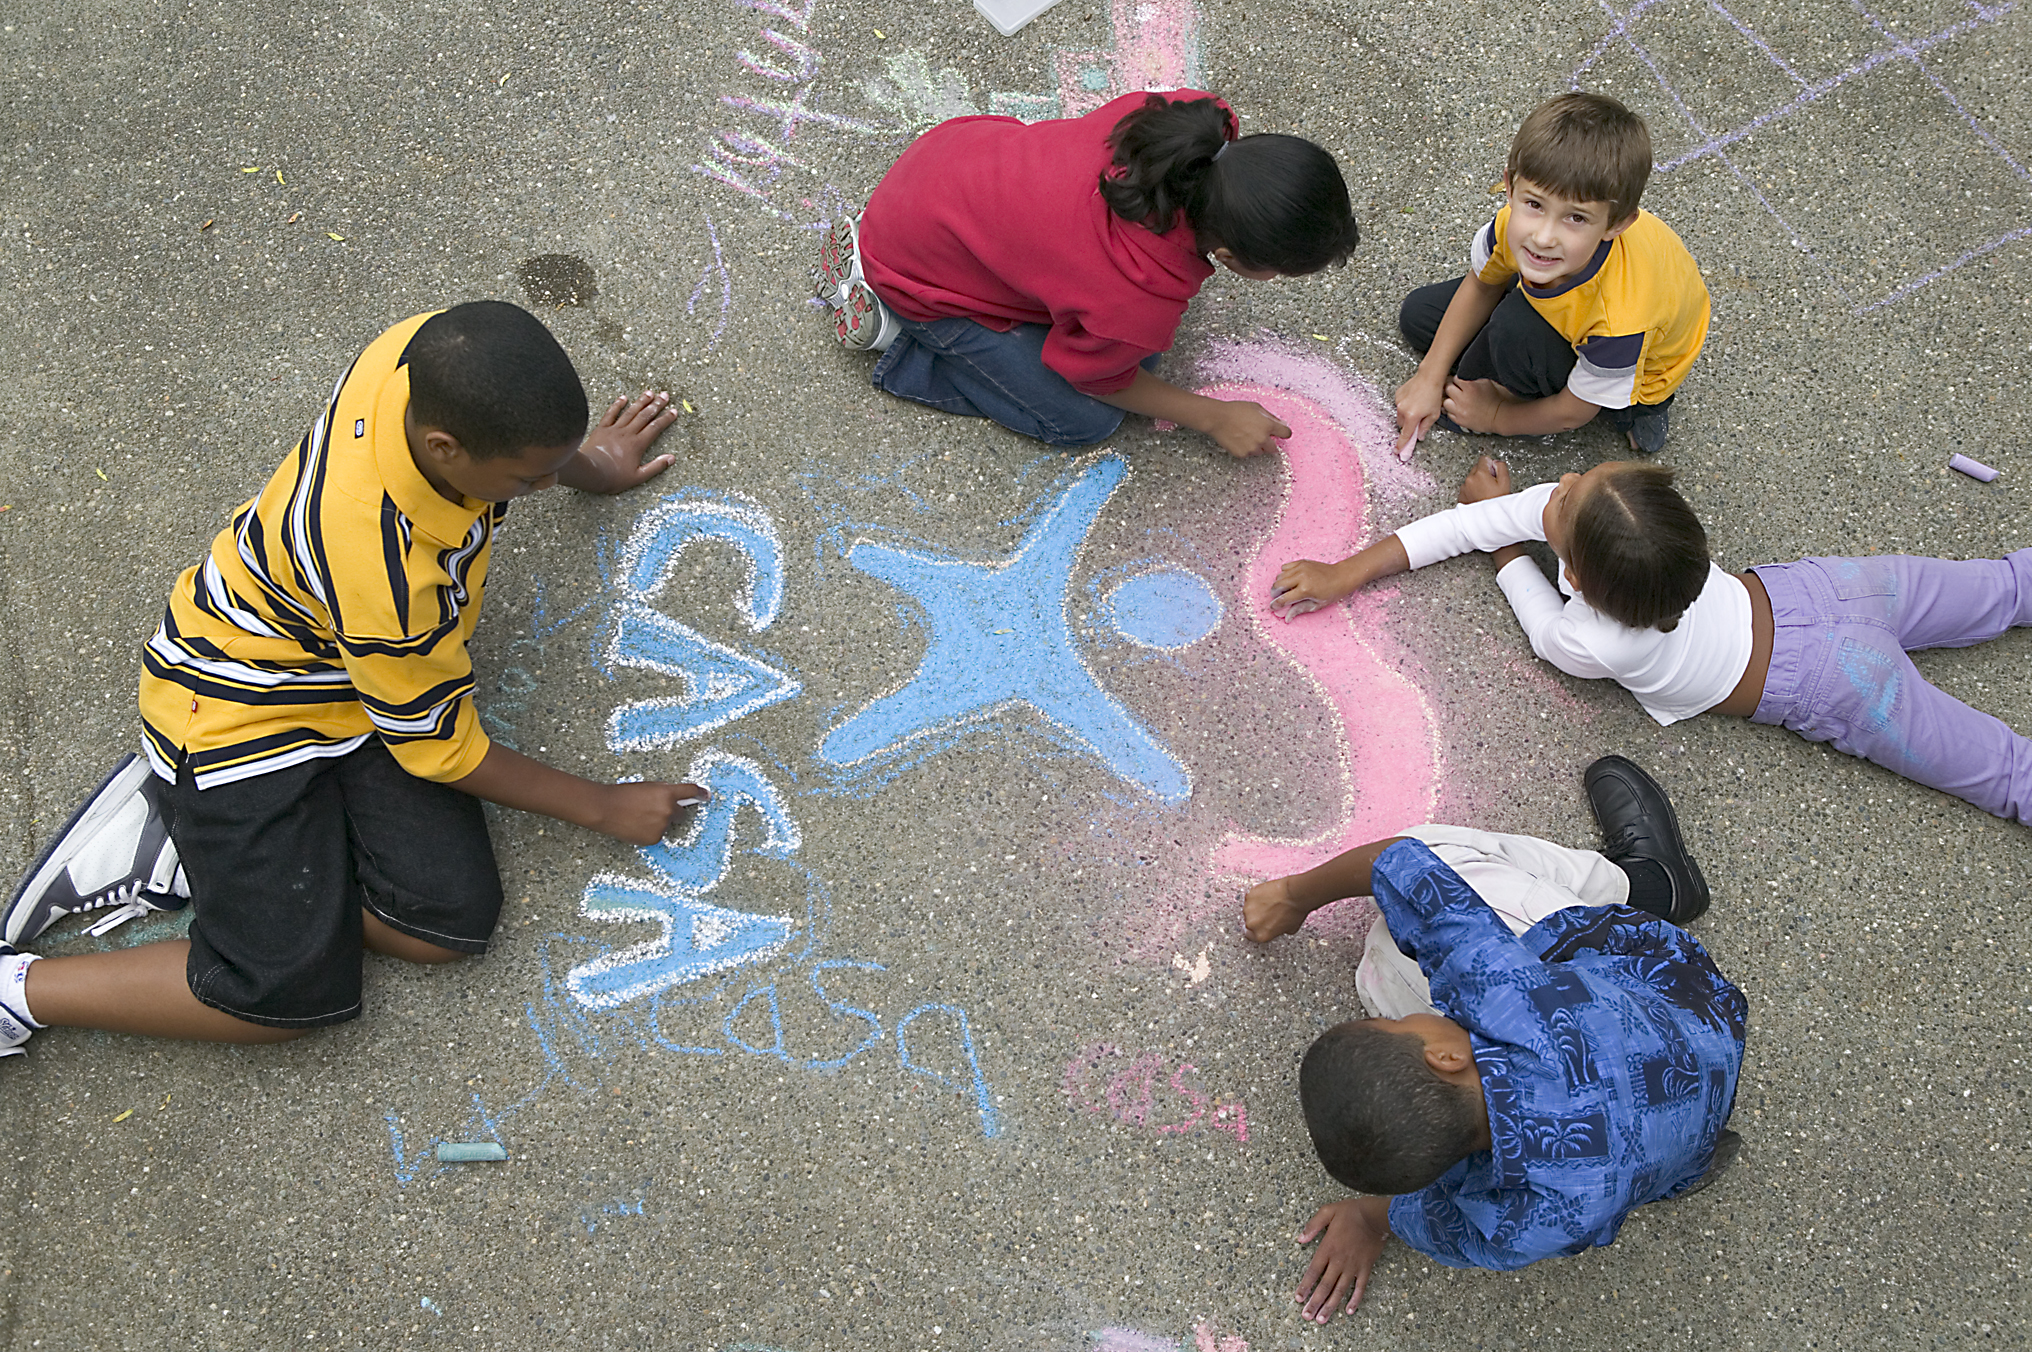 http://nc.casaforchildren.org/files/secure/community/programs/PhotoGallery/Children-in-Diverse-Groups/Casa05t0020E-h.jpg